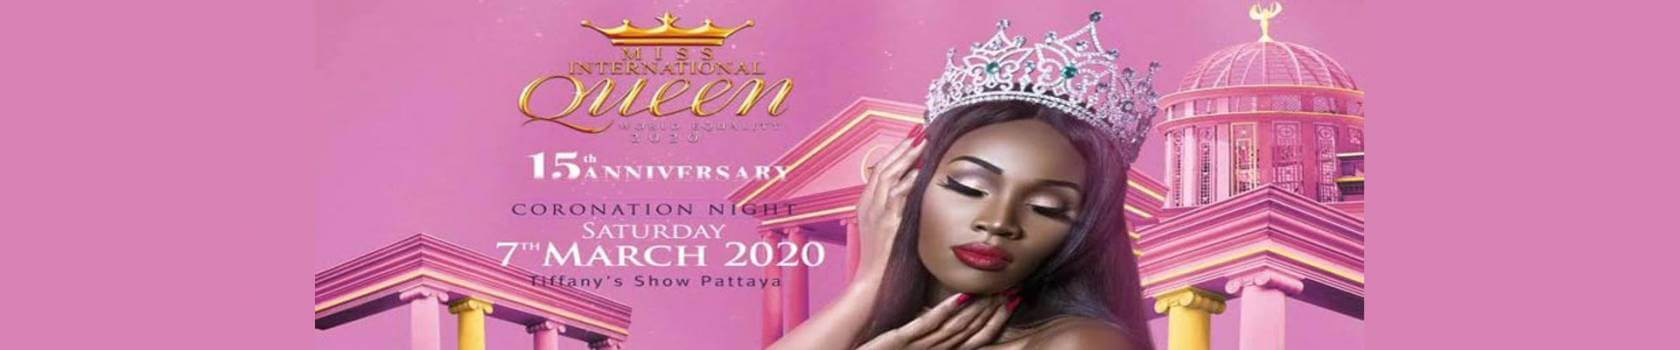 Miss International Queen 2020 Coronation Night